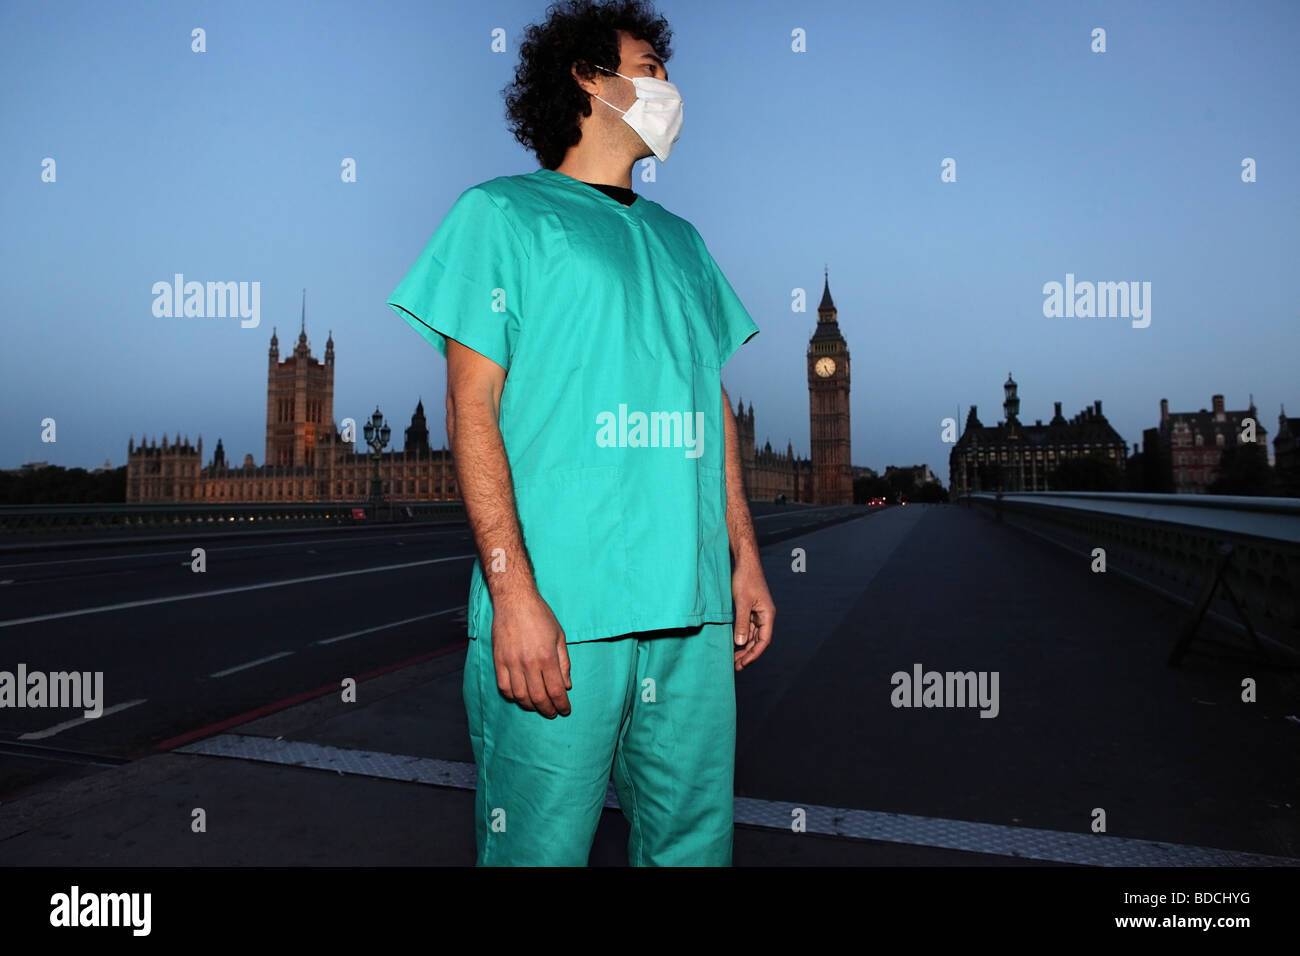 Young man with surgical face mask and jade uniform looks lost nearby the Big Ben, on Parliament Bridge, London. - Stock Image